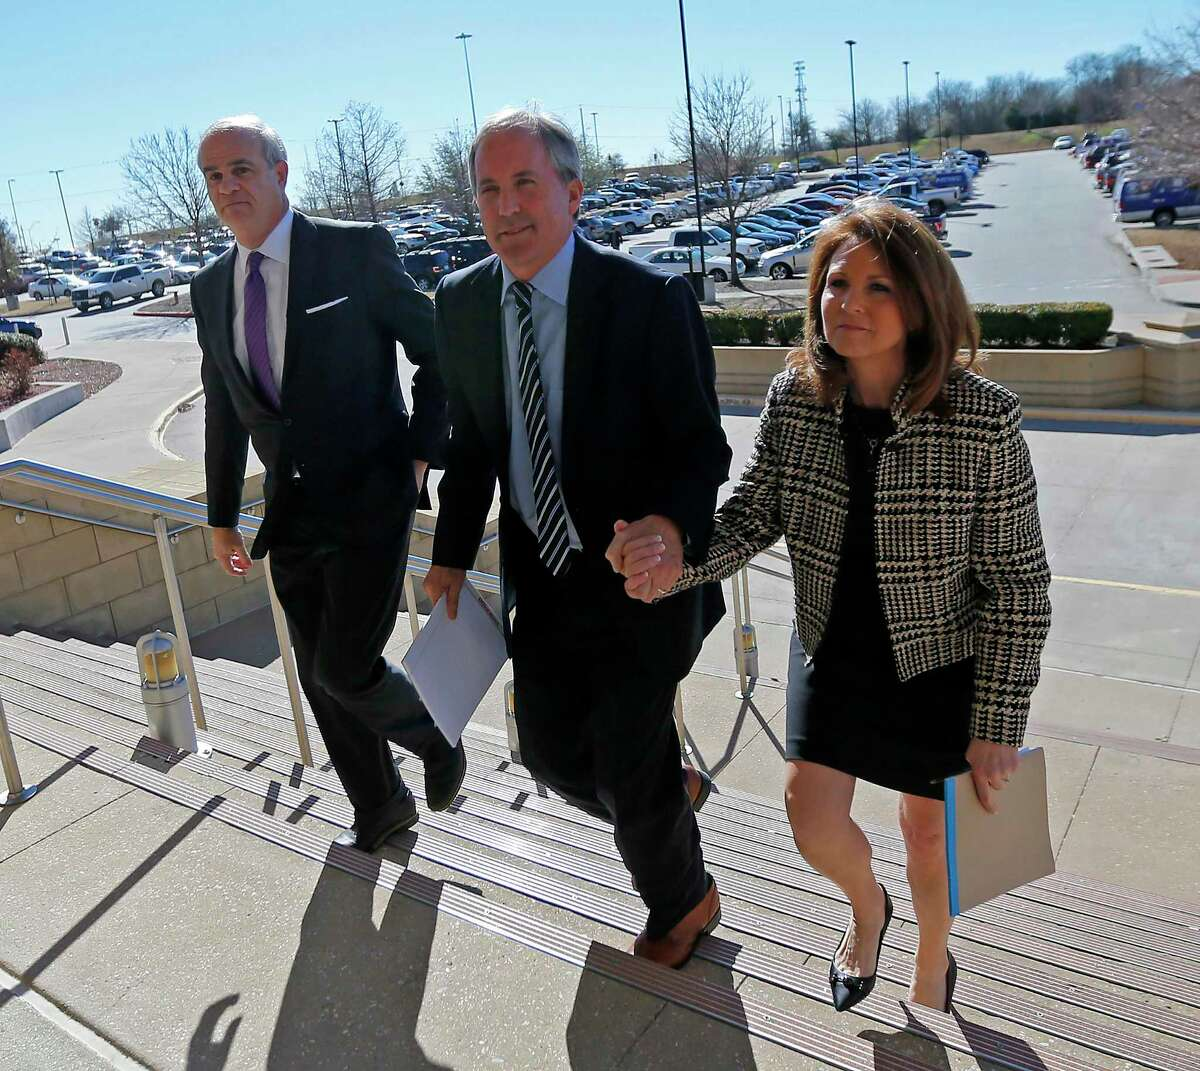 Texas Attorney General Ken Paxton (center) arrives the Collin County Courthouse with his wife Angela (right) and attorney Phillip Hilder for his pretrial hearing in McKinney, Texas, Thursday, Feb. 16, 2017. (Jae S. Lee/The Dallas Morning News)